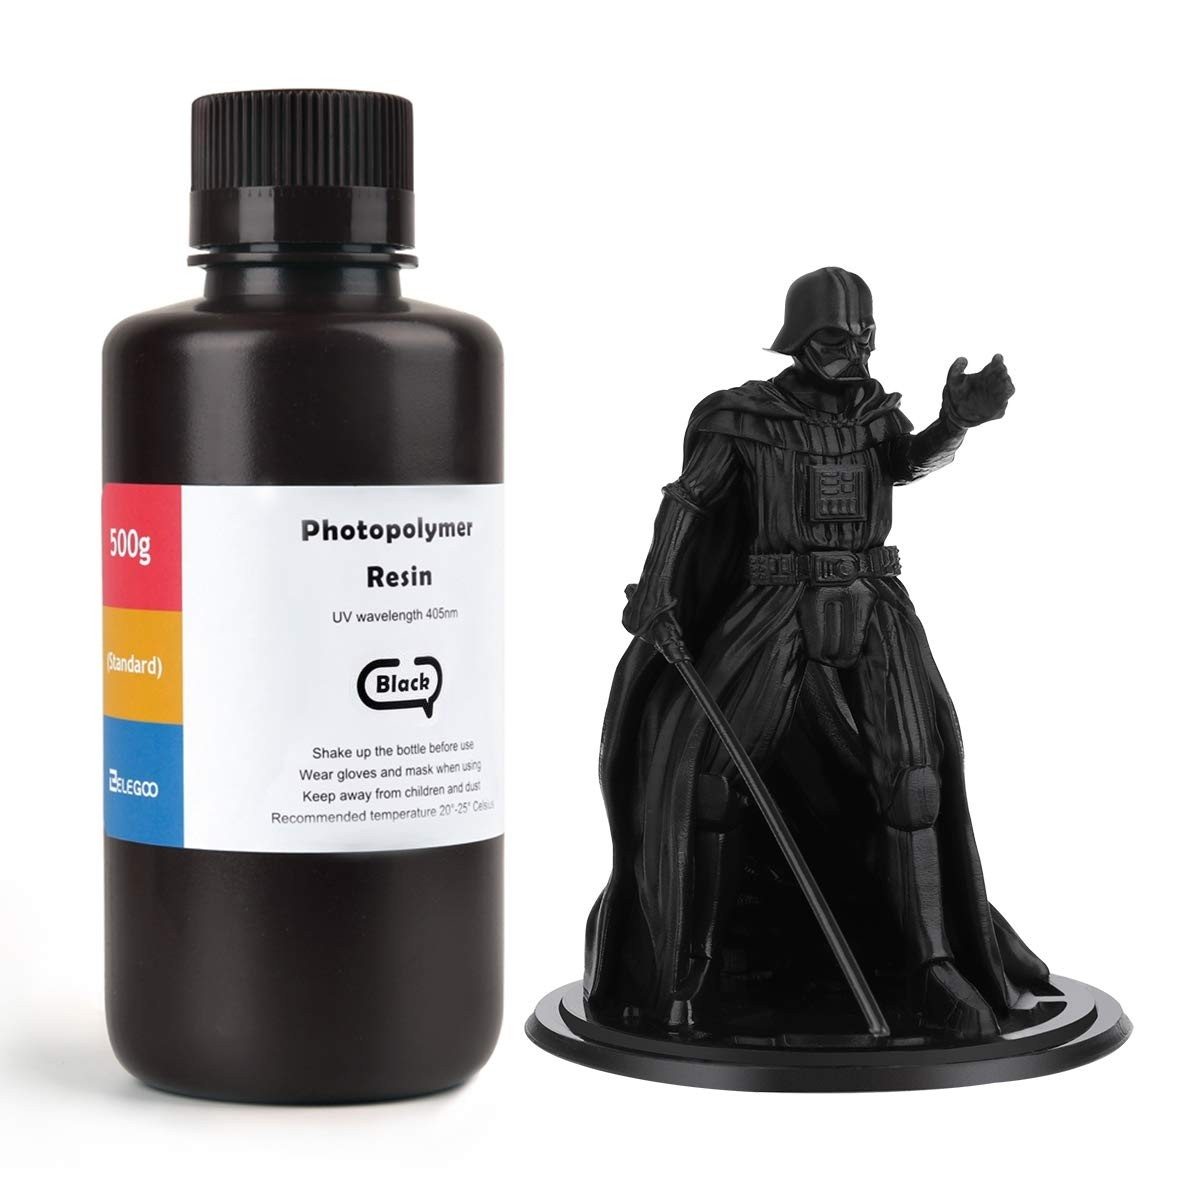 ELEGOO Standard 3D Printer Rapid Resin 500 Gram Black